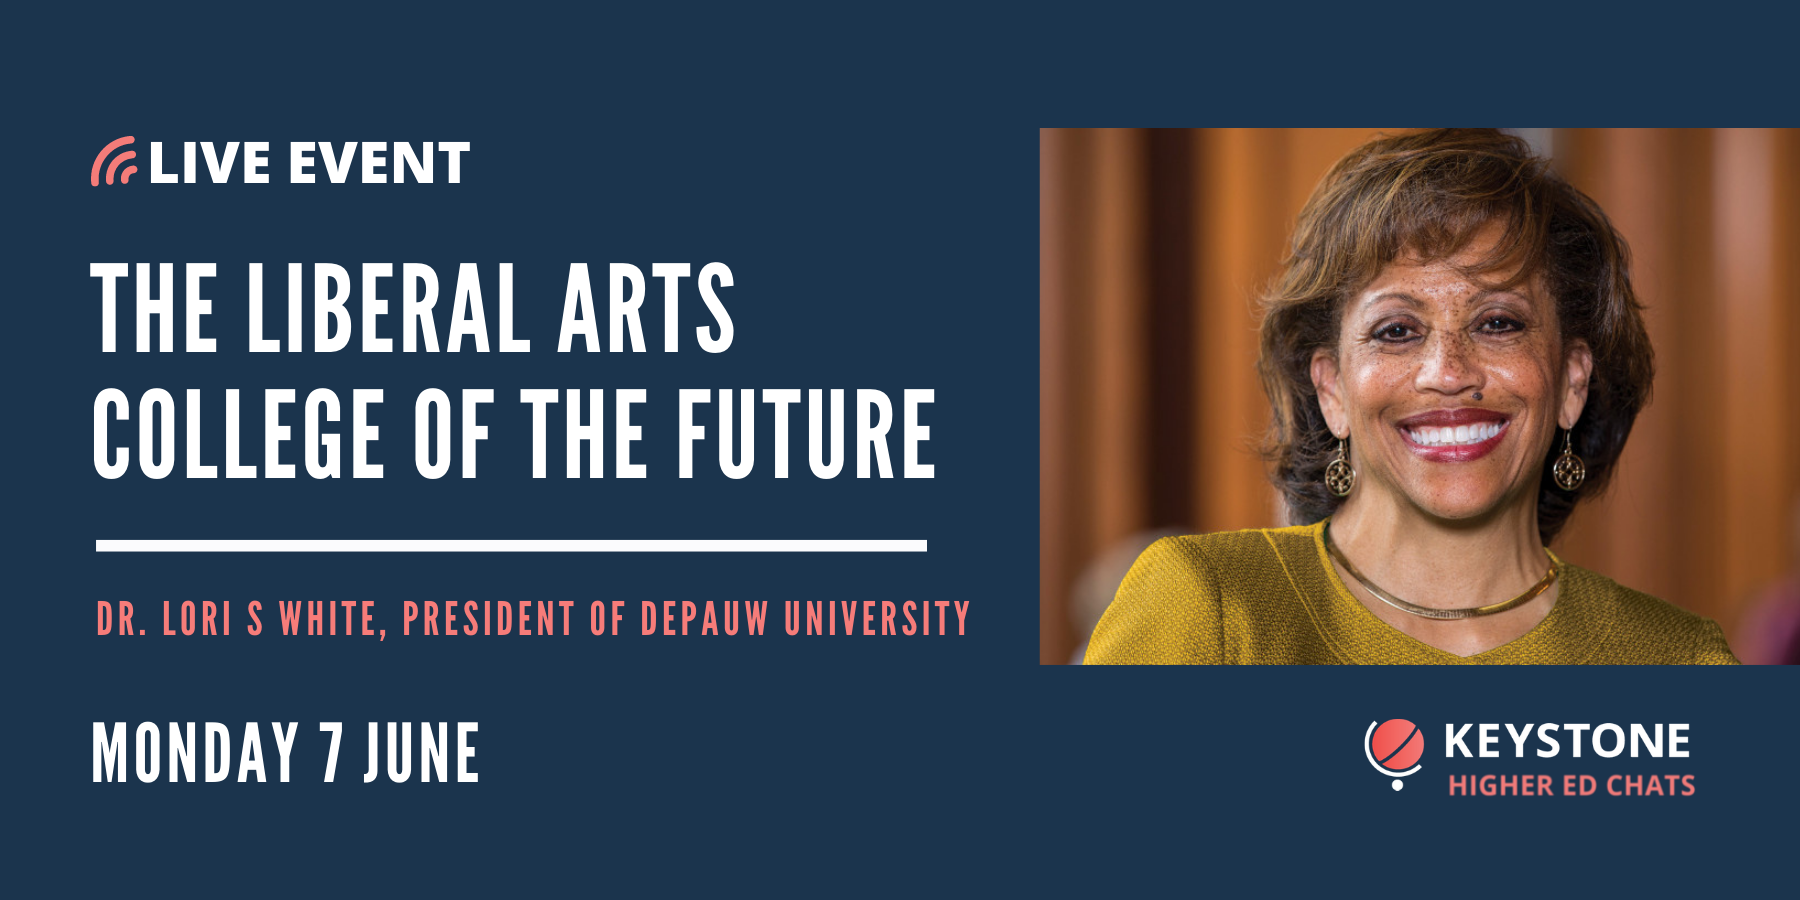 Higher Ed Chats with Dr Lori S. White from DePauw University